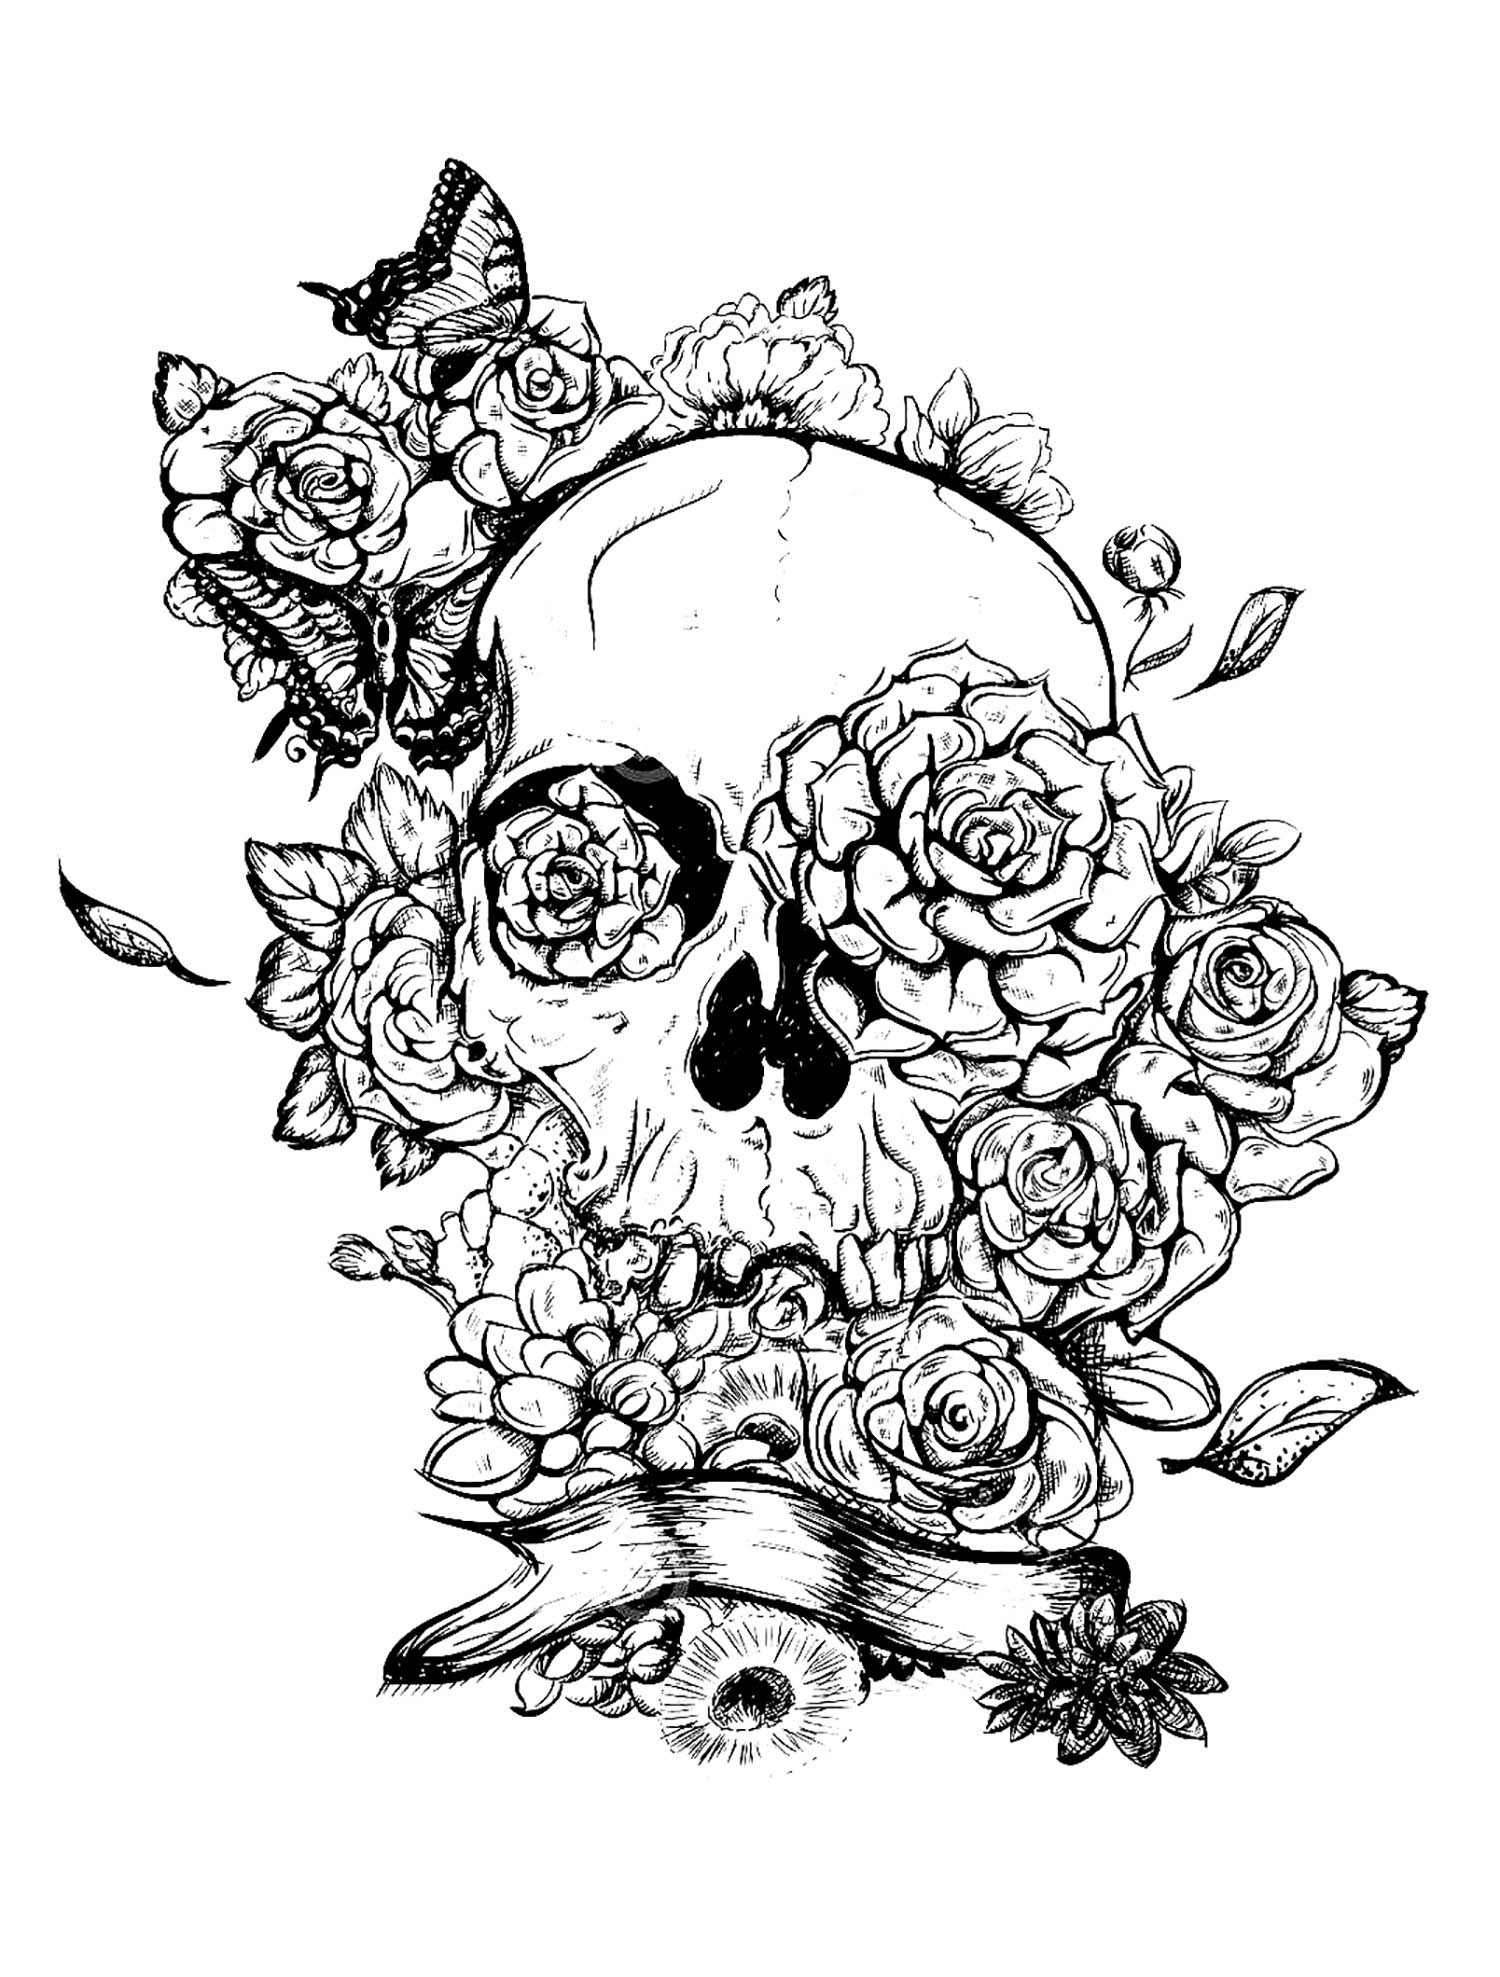 coloring adult skull and roses tatoo - Tattoo Coloring Book